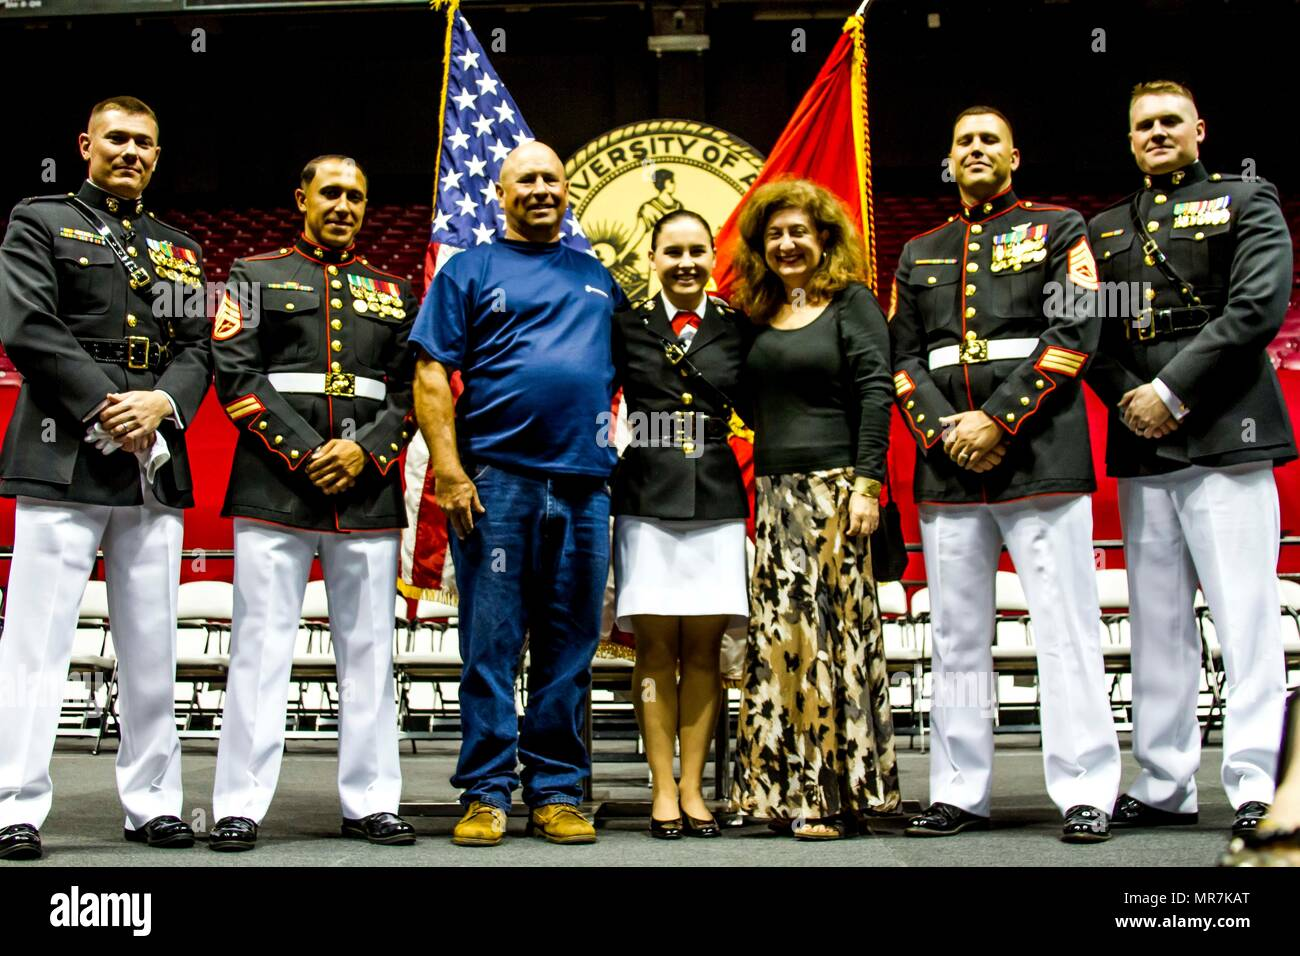 "Second Lieutenant Mary Sanders poses with Marines with the officer selection team for Recruiting Station Montgomery and family members after her commissioning ceremony at Coleman Coliseum, May 12, 2017. Sanders is a recent graduate of Alabama State University and attended Platoon Leaders Course and Officer Candidate School before being commissioned. ""After a couple of weeks I saw how the Marine Corps worked and was hooked. I was so inspired and motivated that if I had any doubts before, they were gone. This was something I wanted to be a part of."" (U.S. Marine Corps photo by Cpl. Krista James/ - Stock Image"